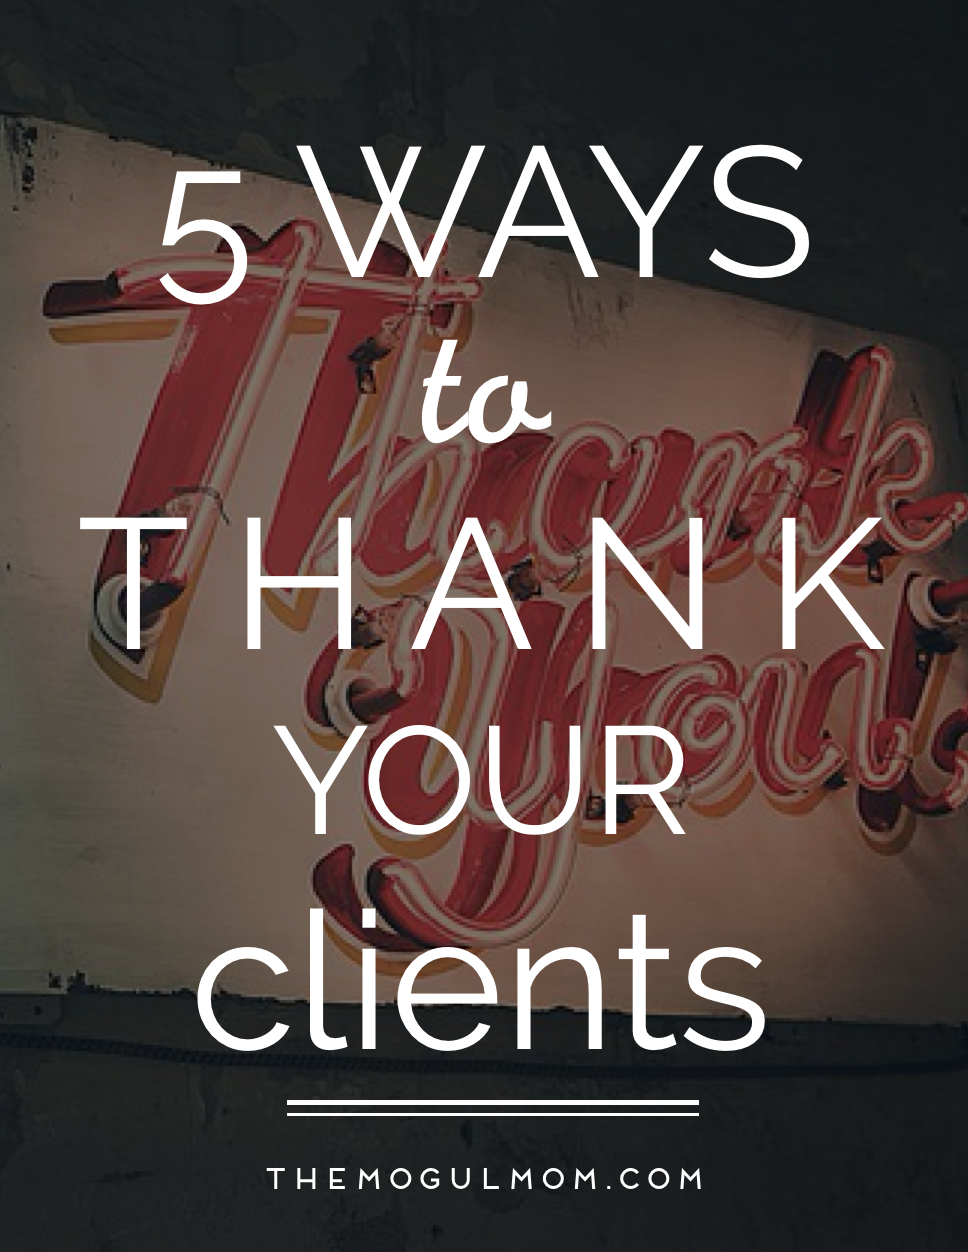 5 Ways to Thank Your Clients